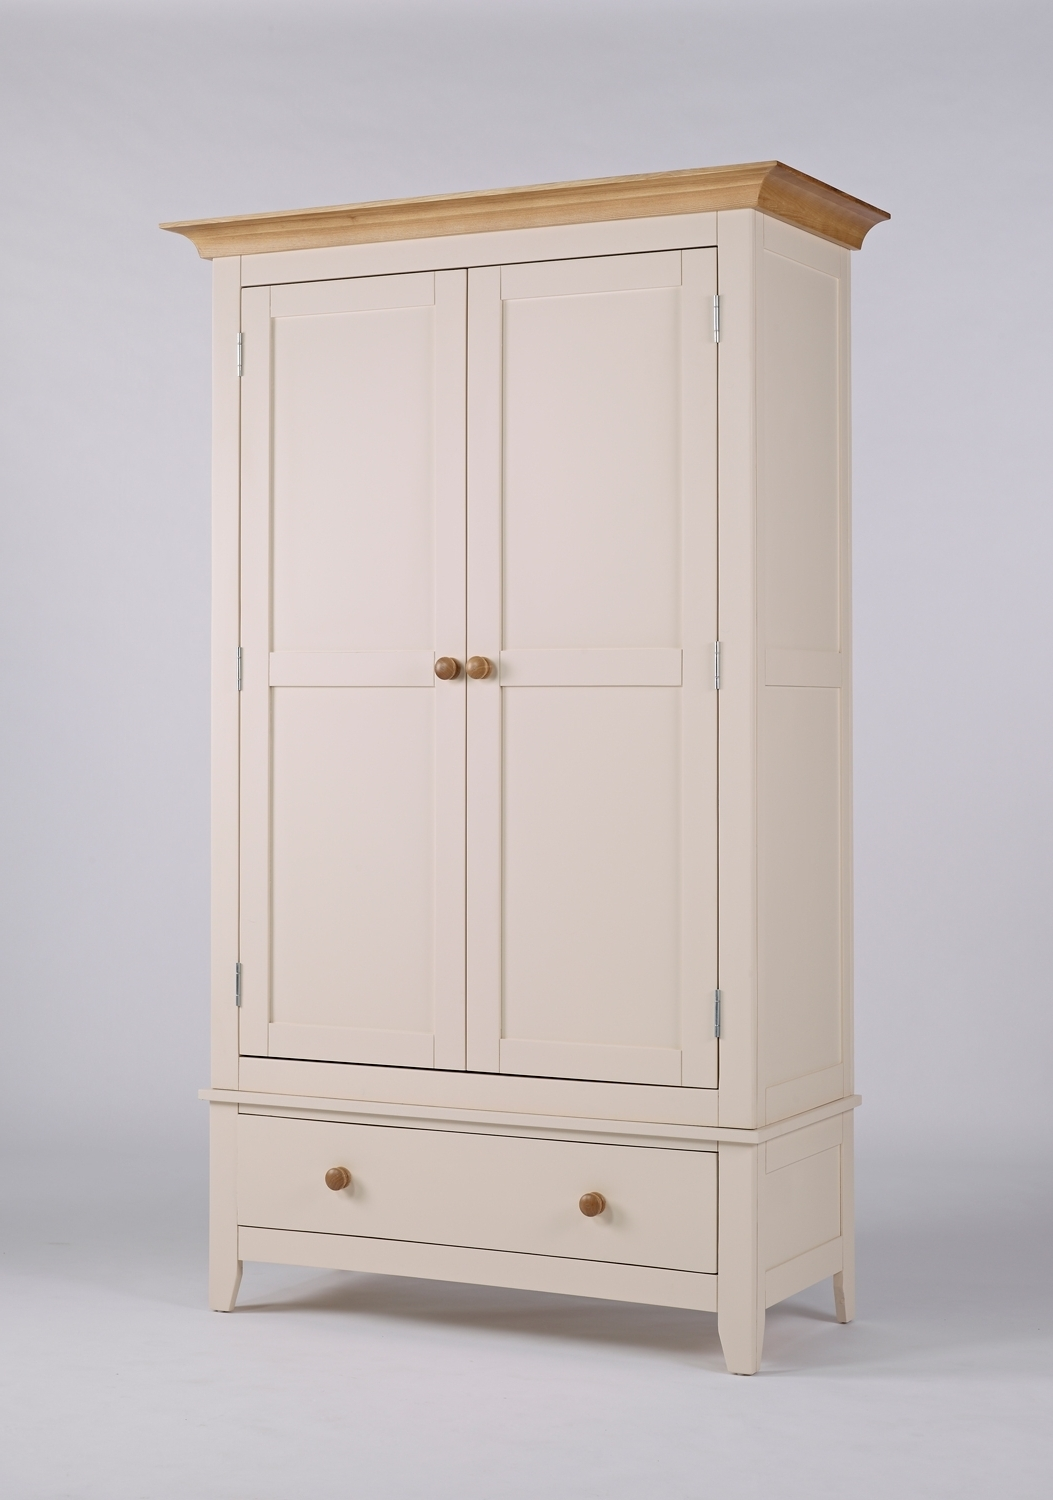 White Painted Wardrobes Inside Fashionable Camden Painted Pine & Ash Wardrobe With Drawer (View 13 of 15)